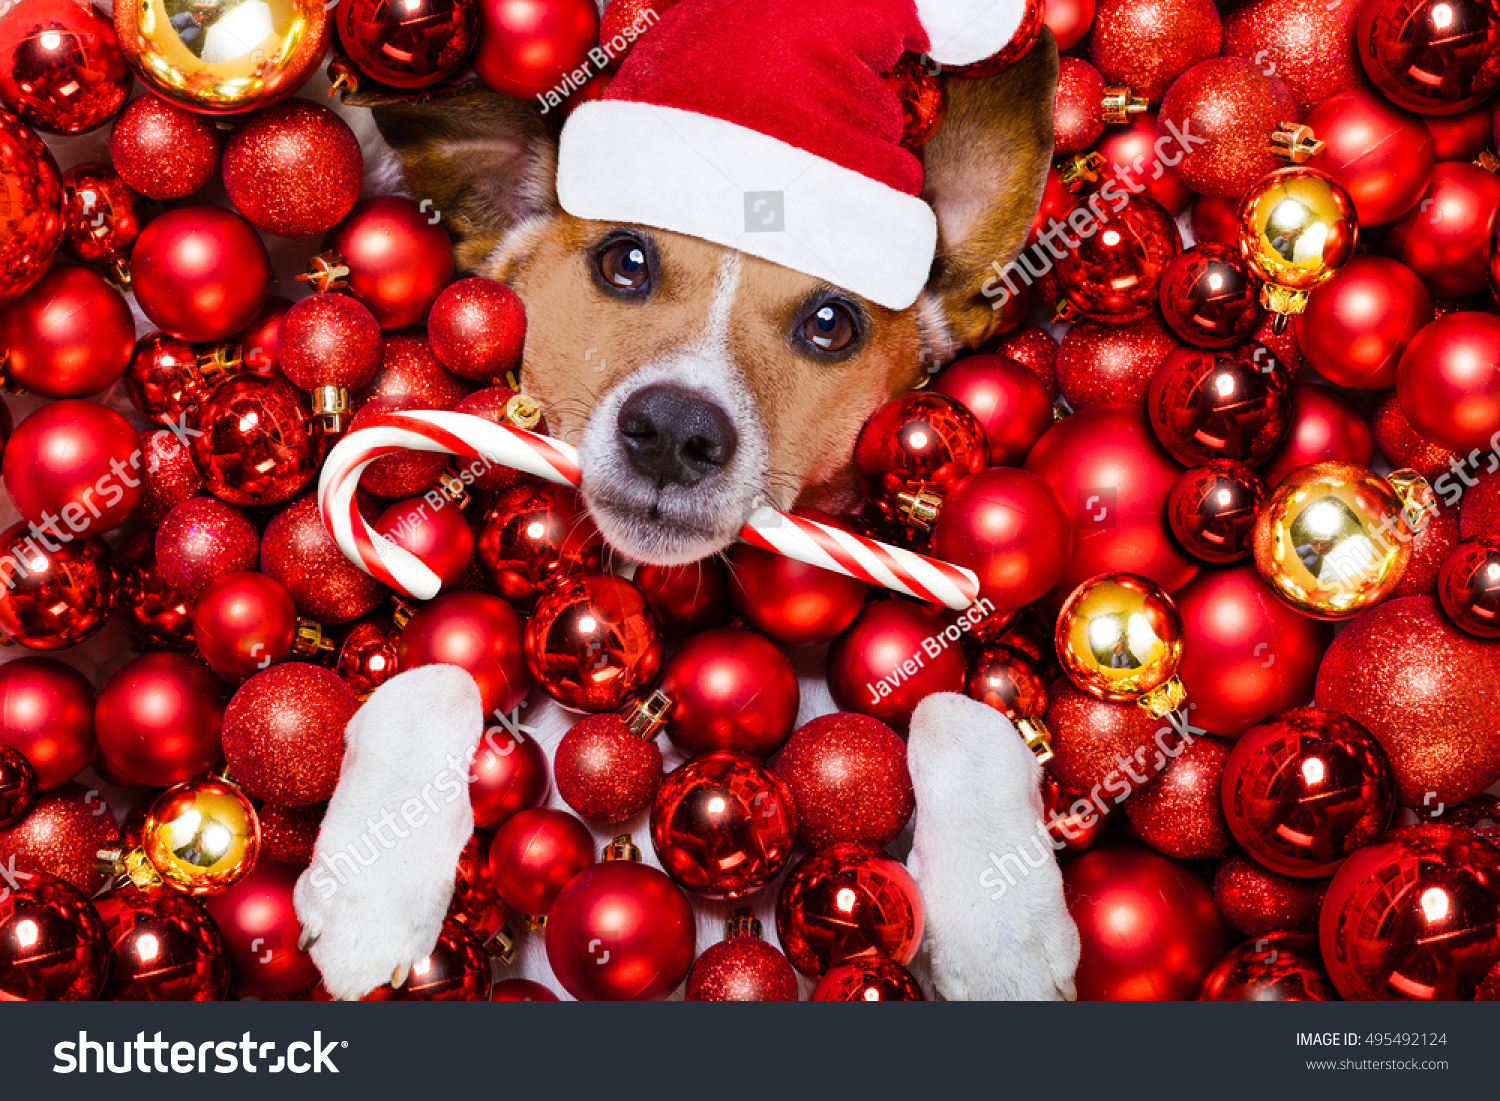 Jack russell terrier dog santa claus stock photo